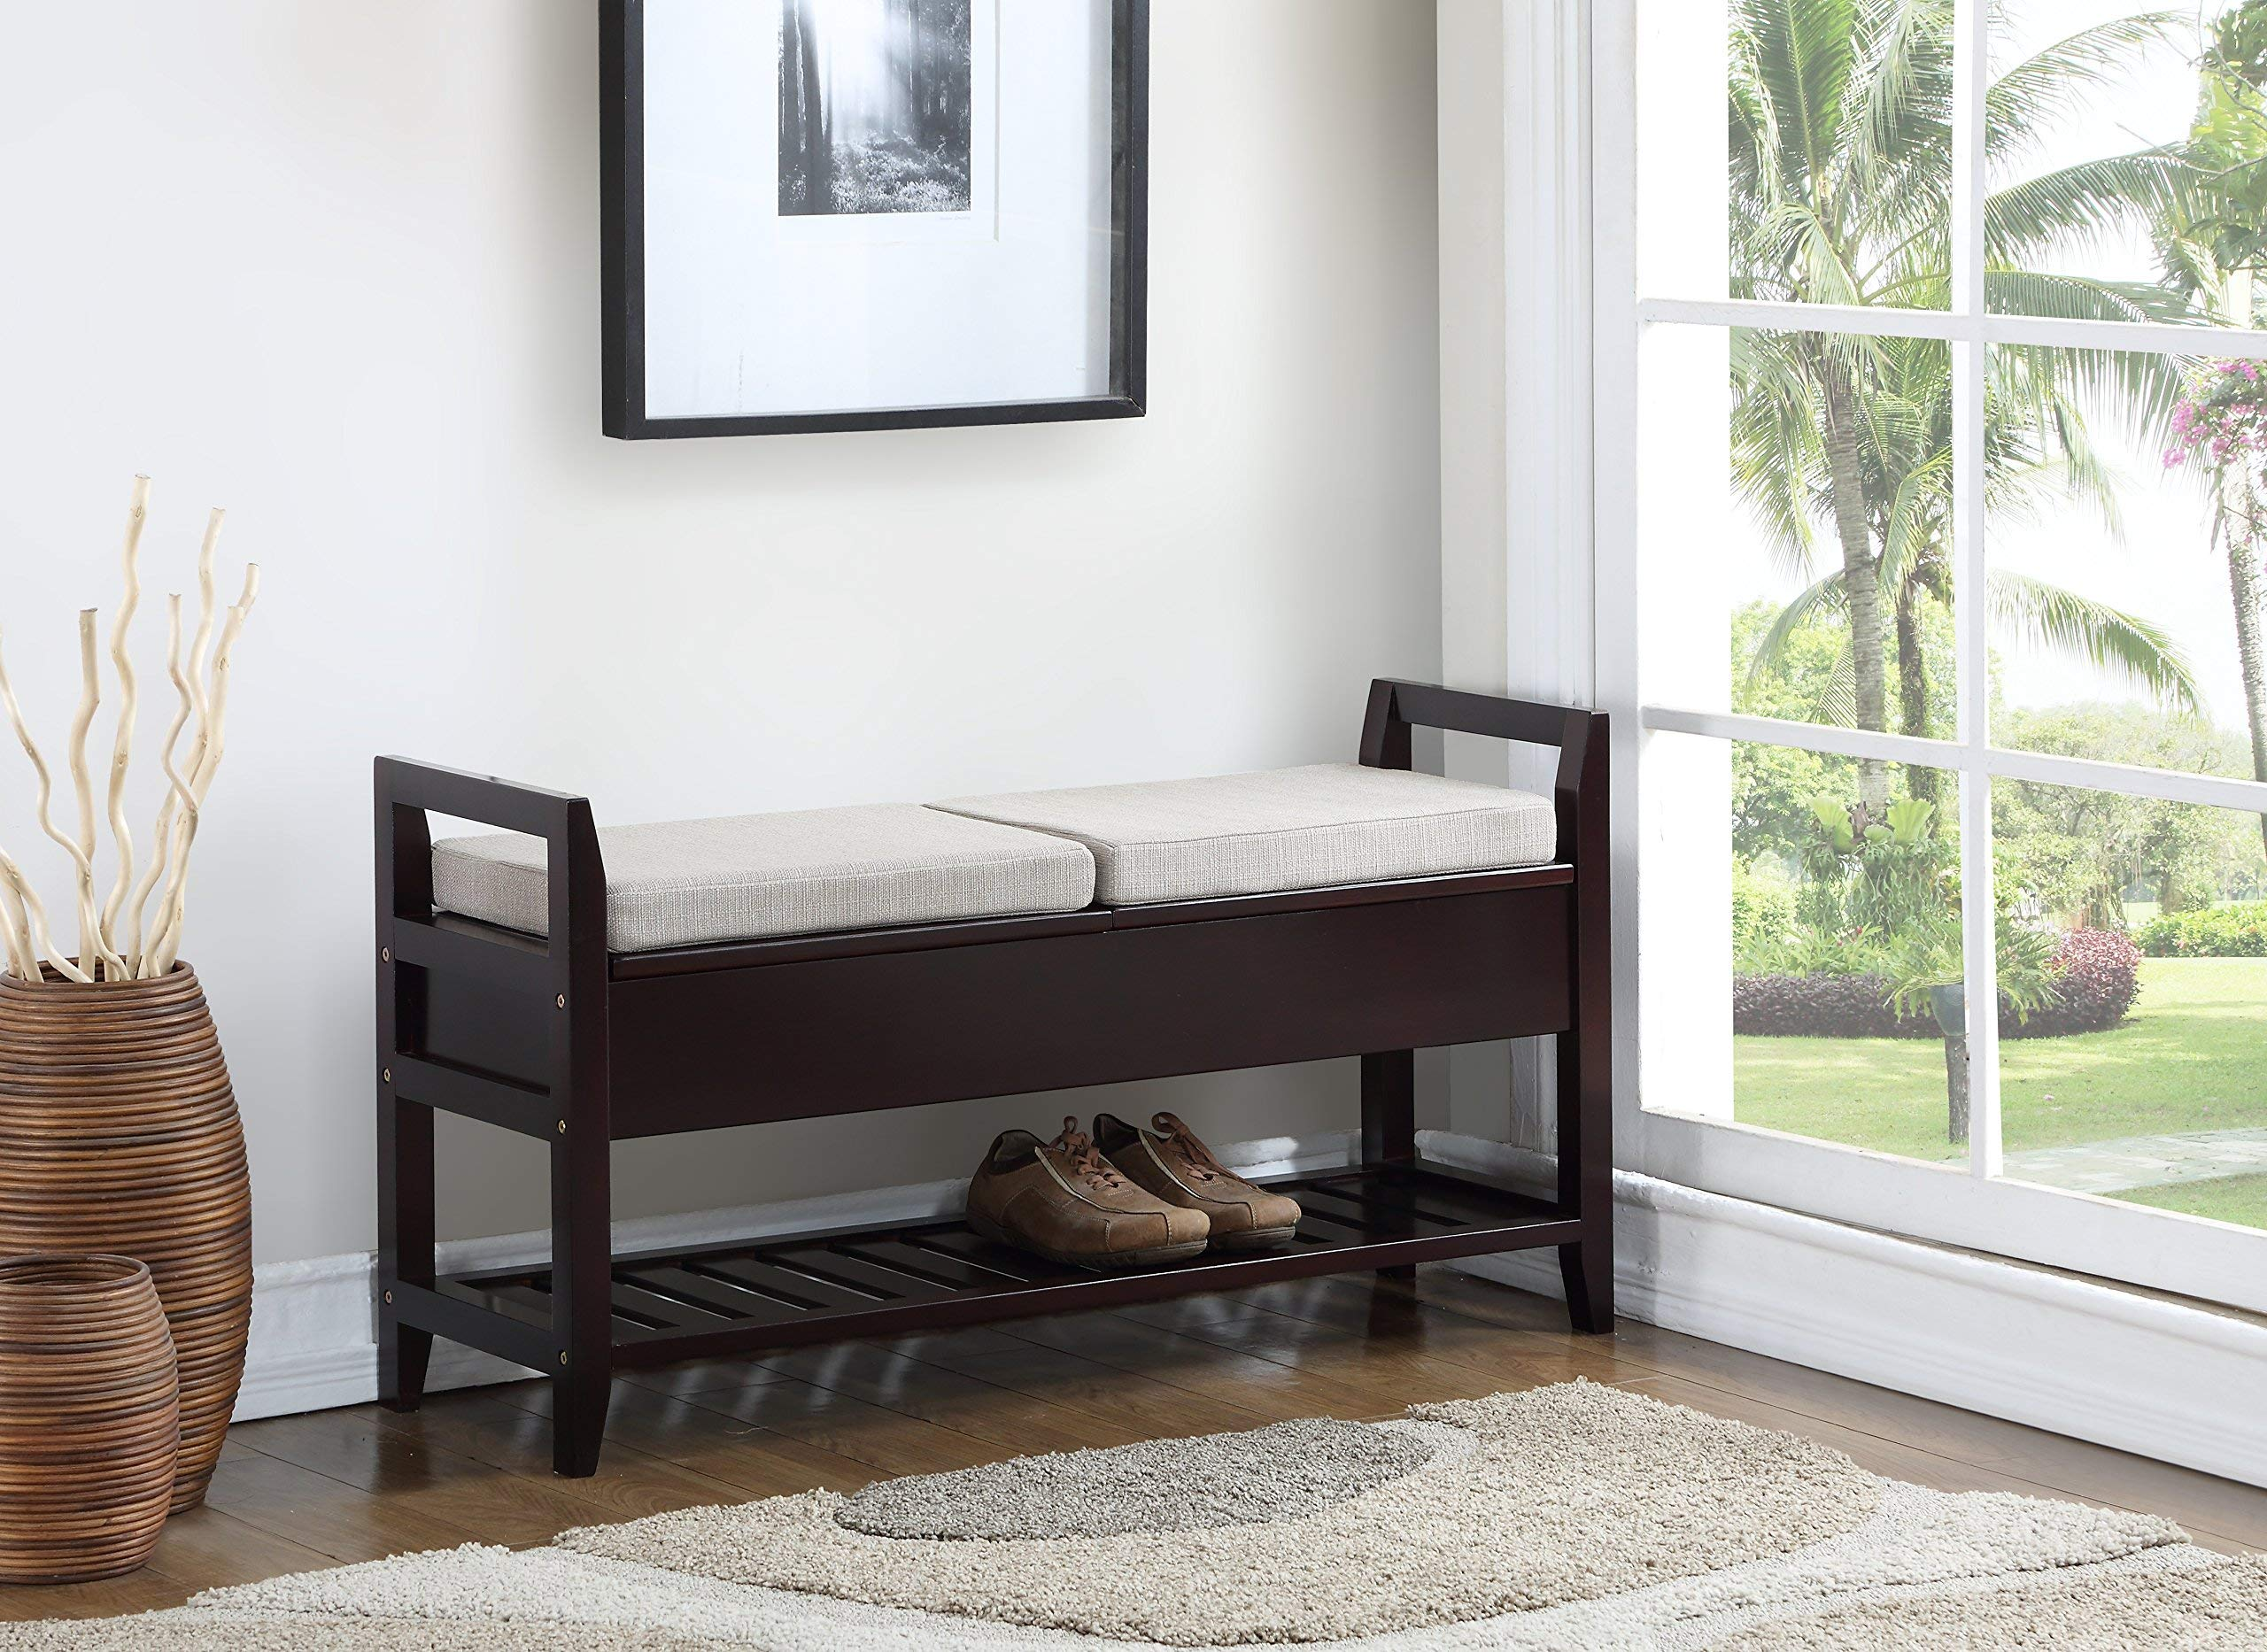 Roundhill Furniture 3432EP Vannes Espresso Storage Shoe Bench by Roundhill Furniture